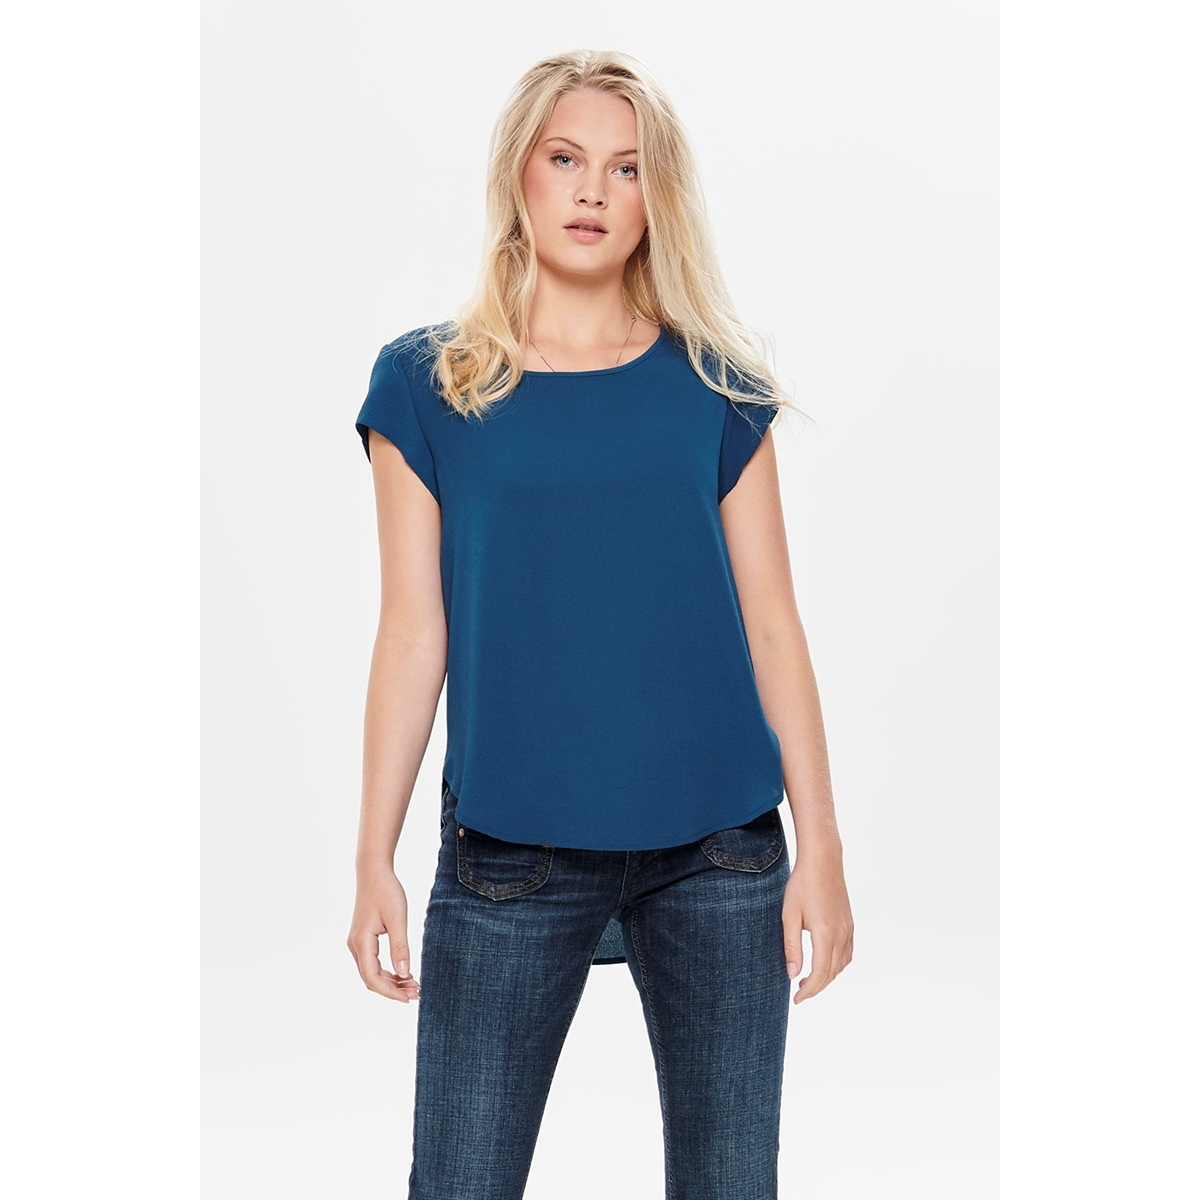 onlvic s/s solid top noos wvn 15142784 only t-shirt gibraltar sea